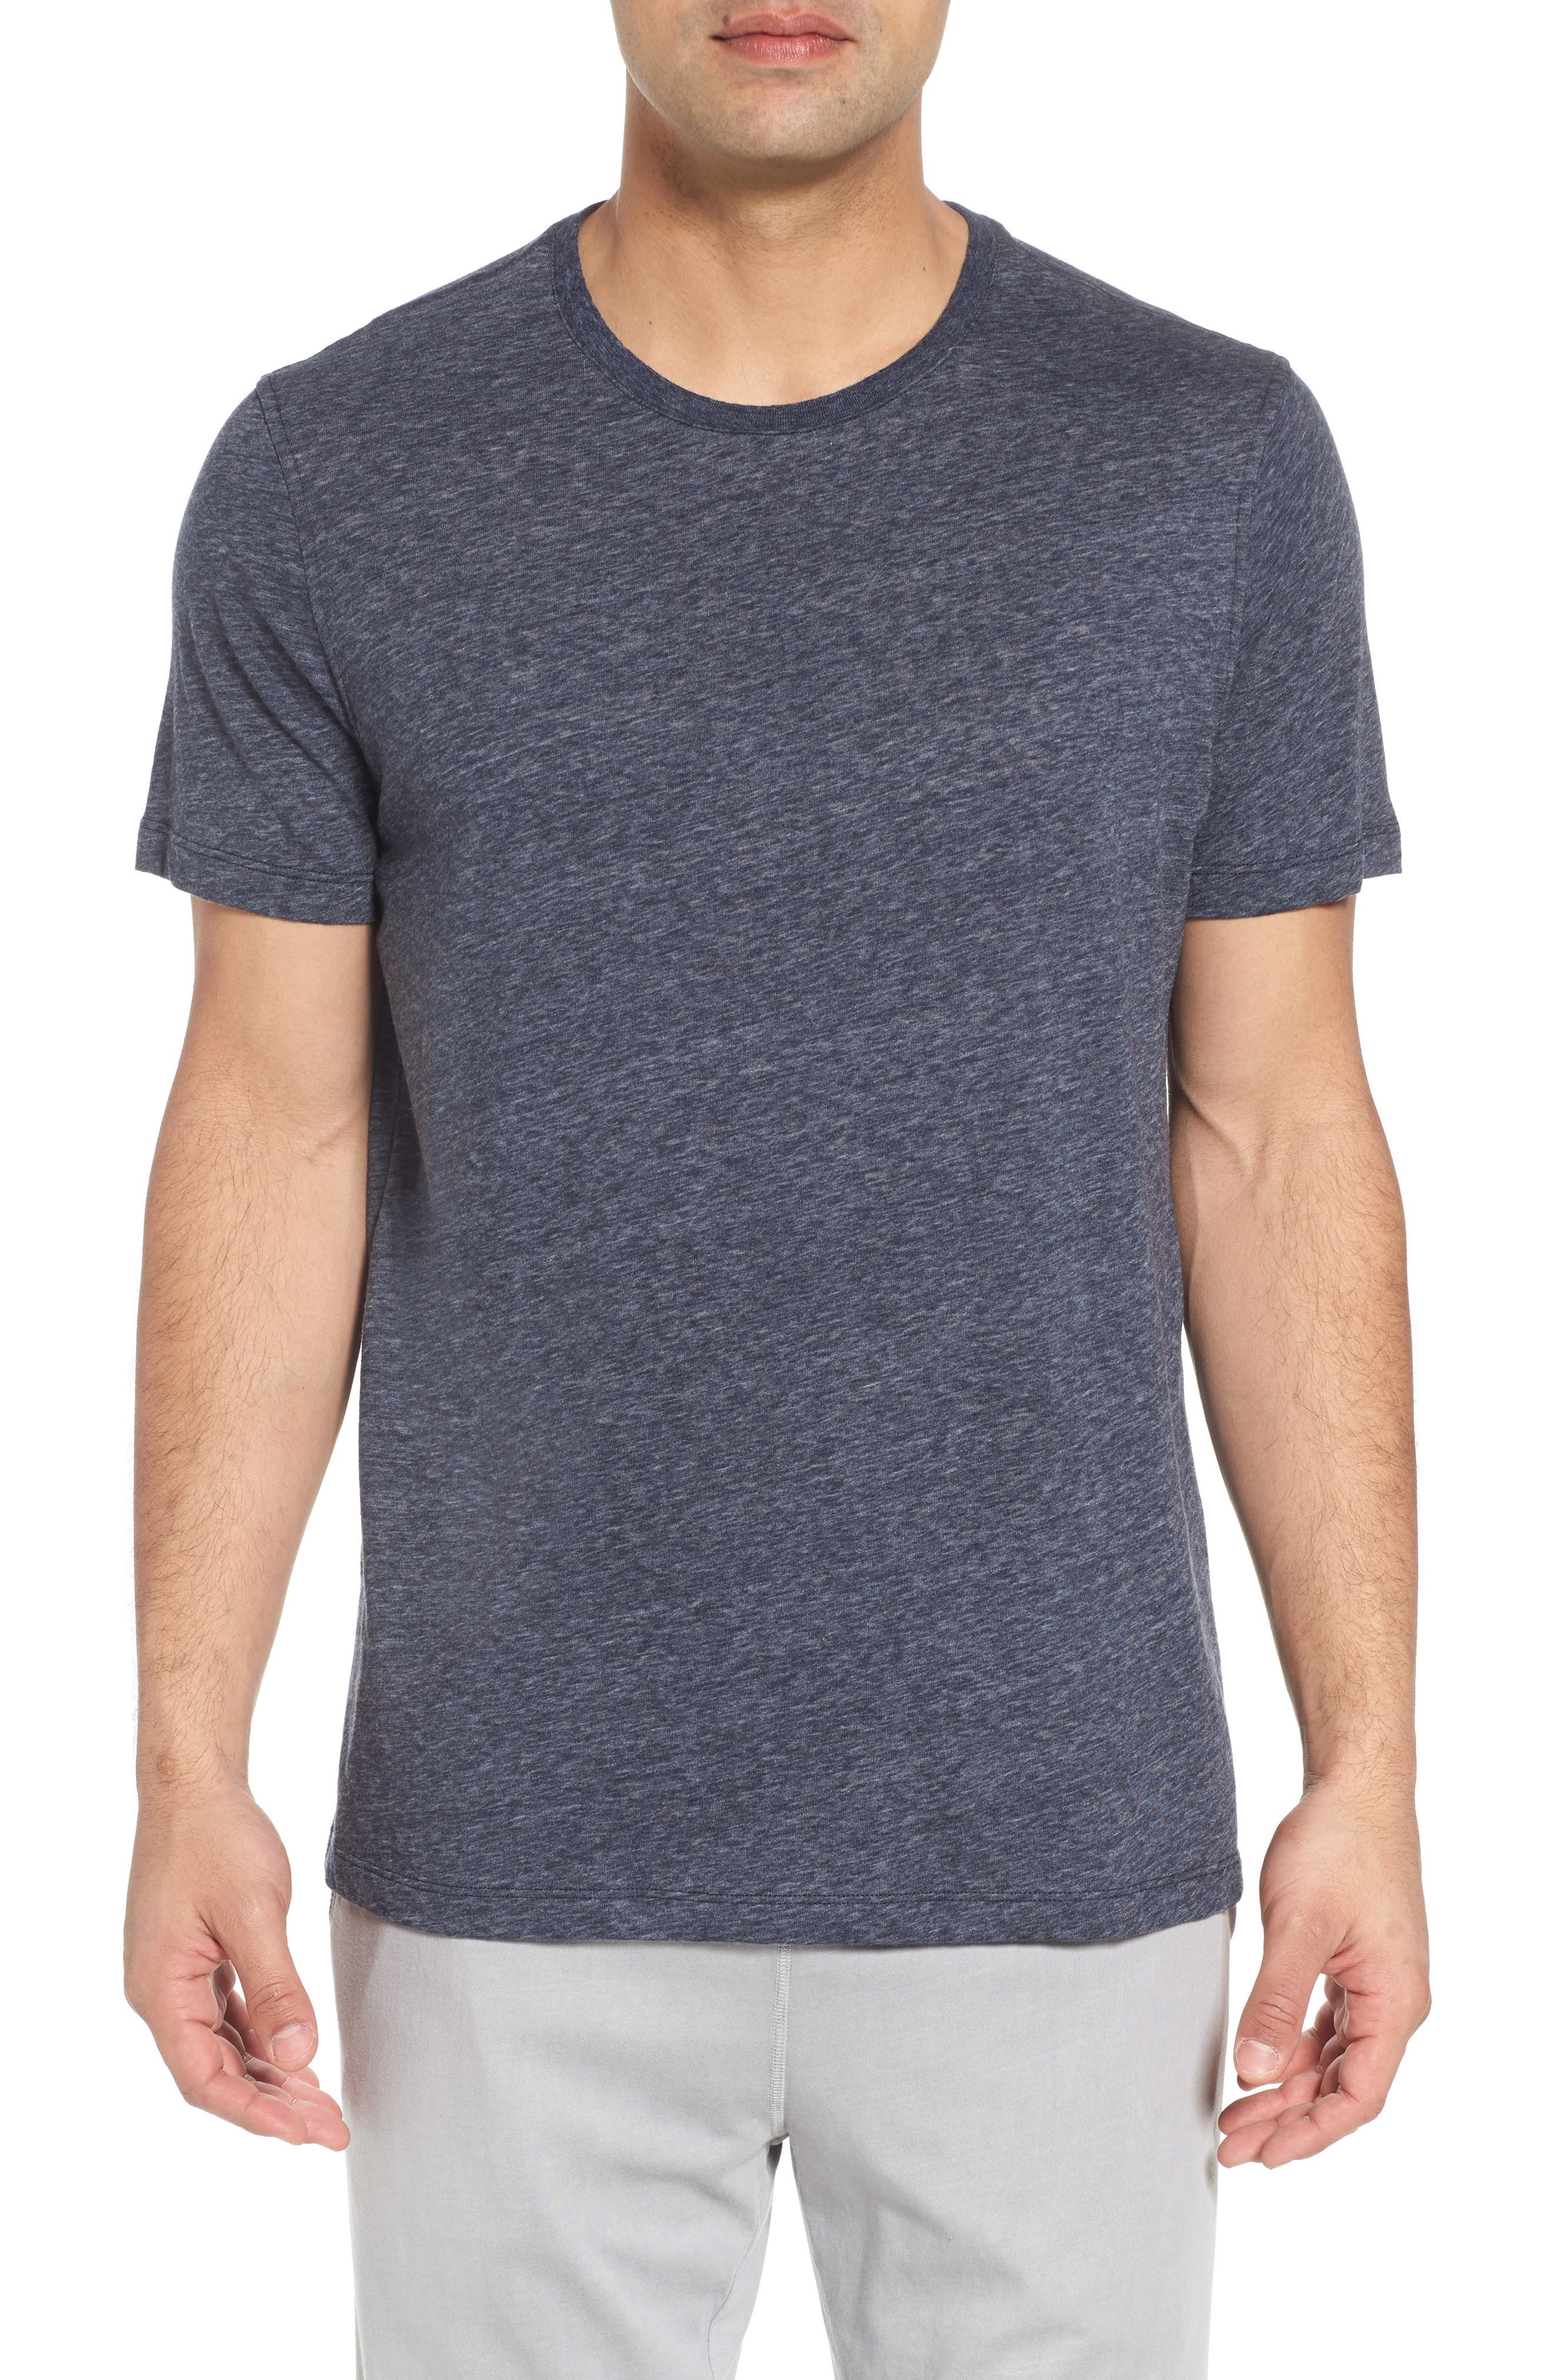 Recycled Cotton Blend T-Shirt,                             Main thumbnail 1, color,                             NAVY HEATHER